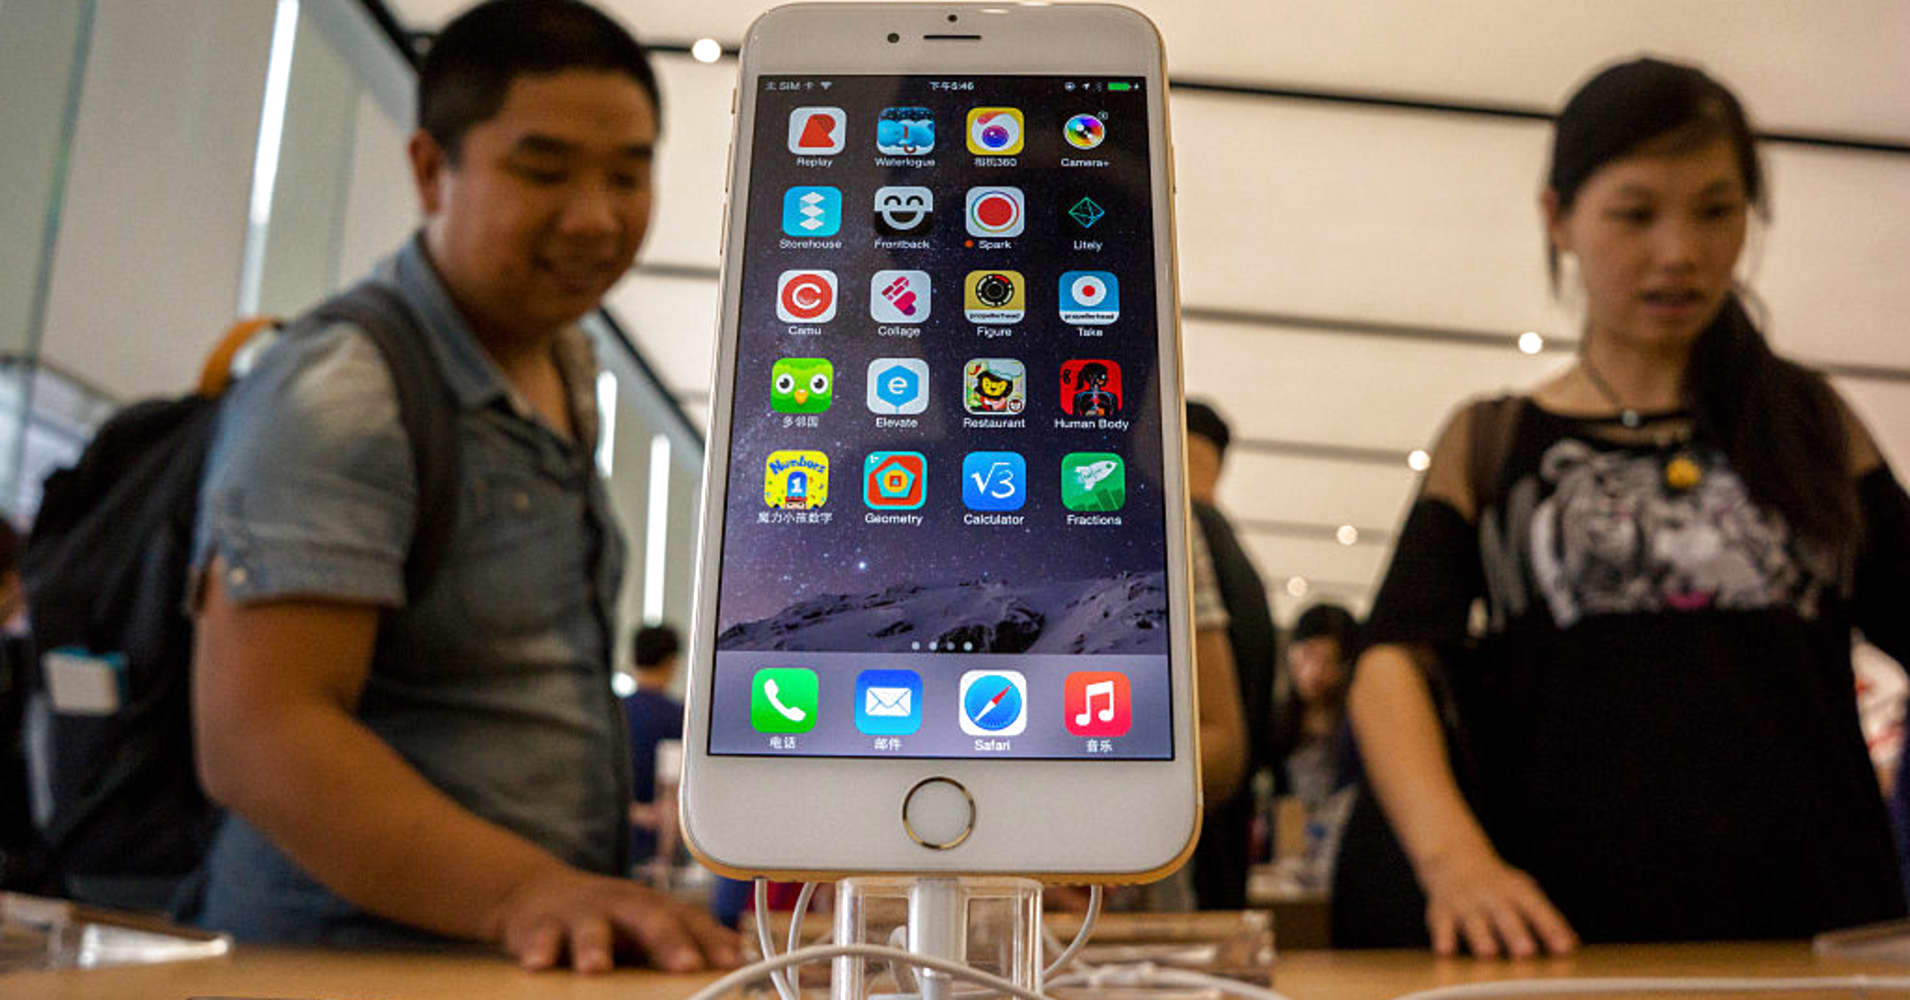 Apple Chip Supplier Says China's Smartphone Market is Picking up